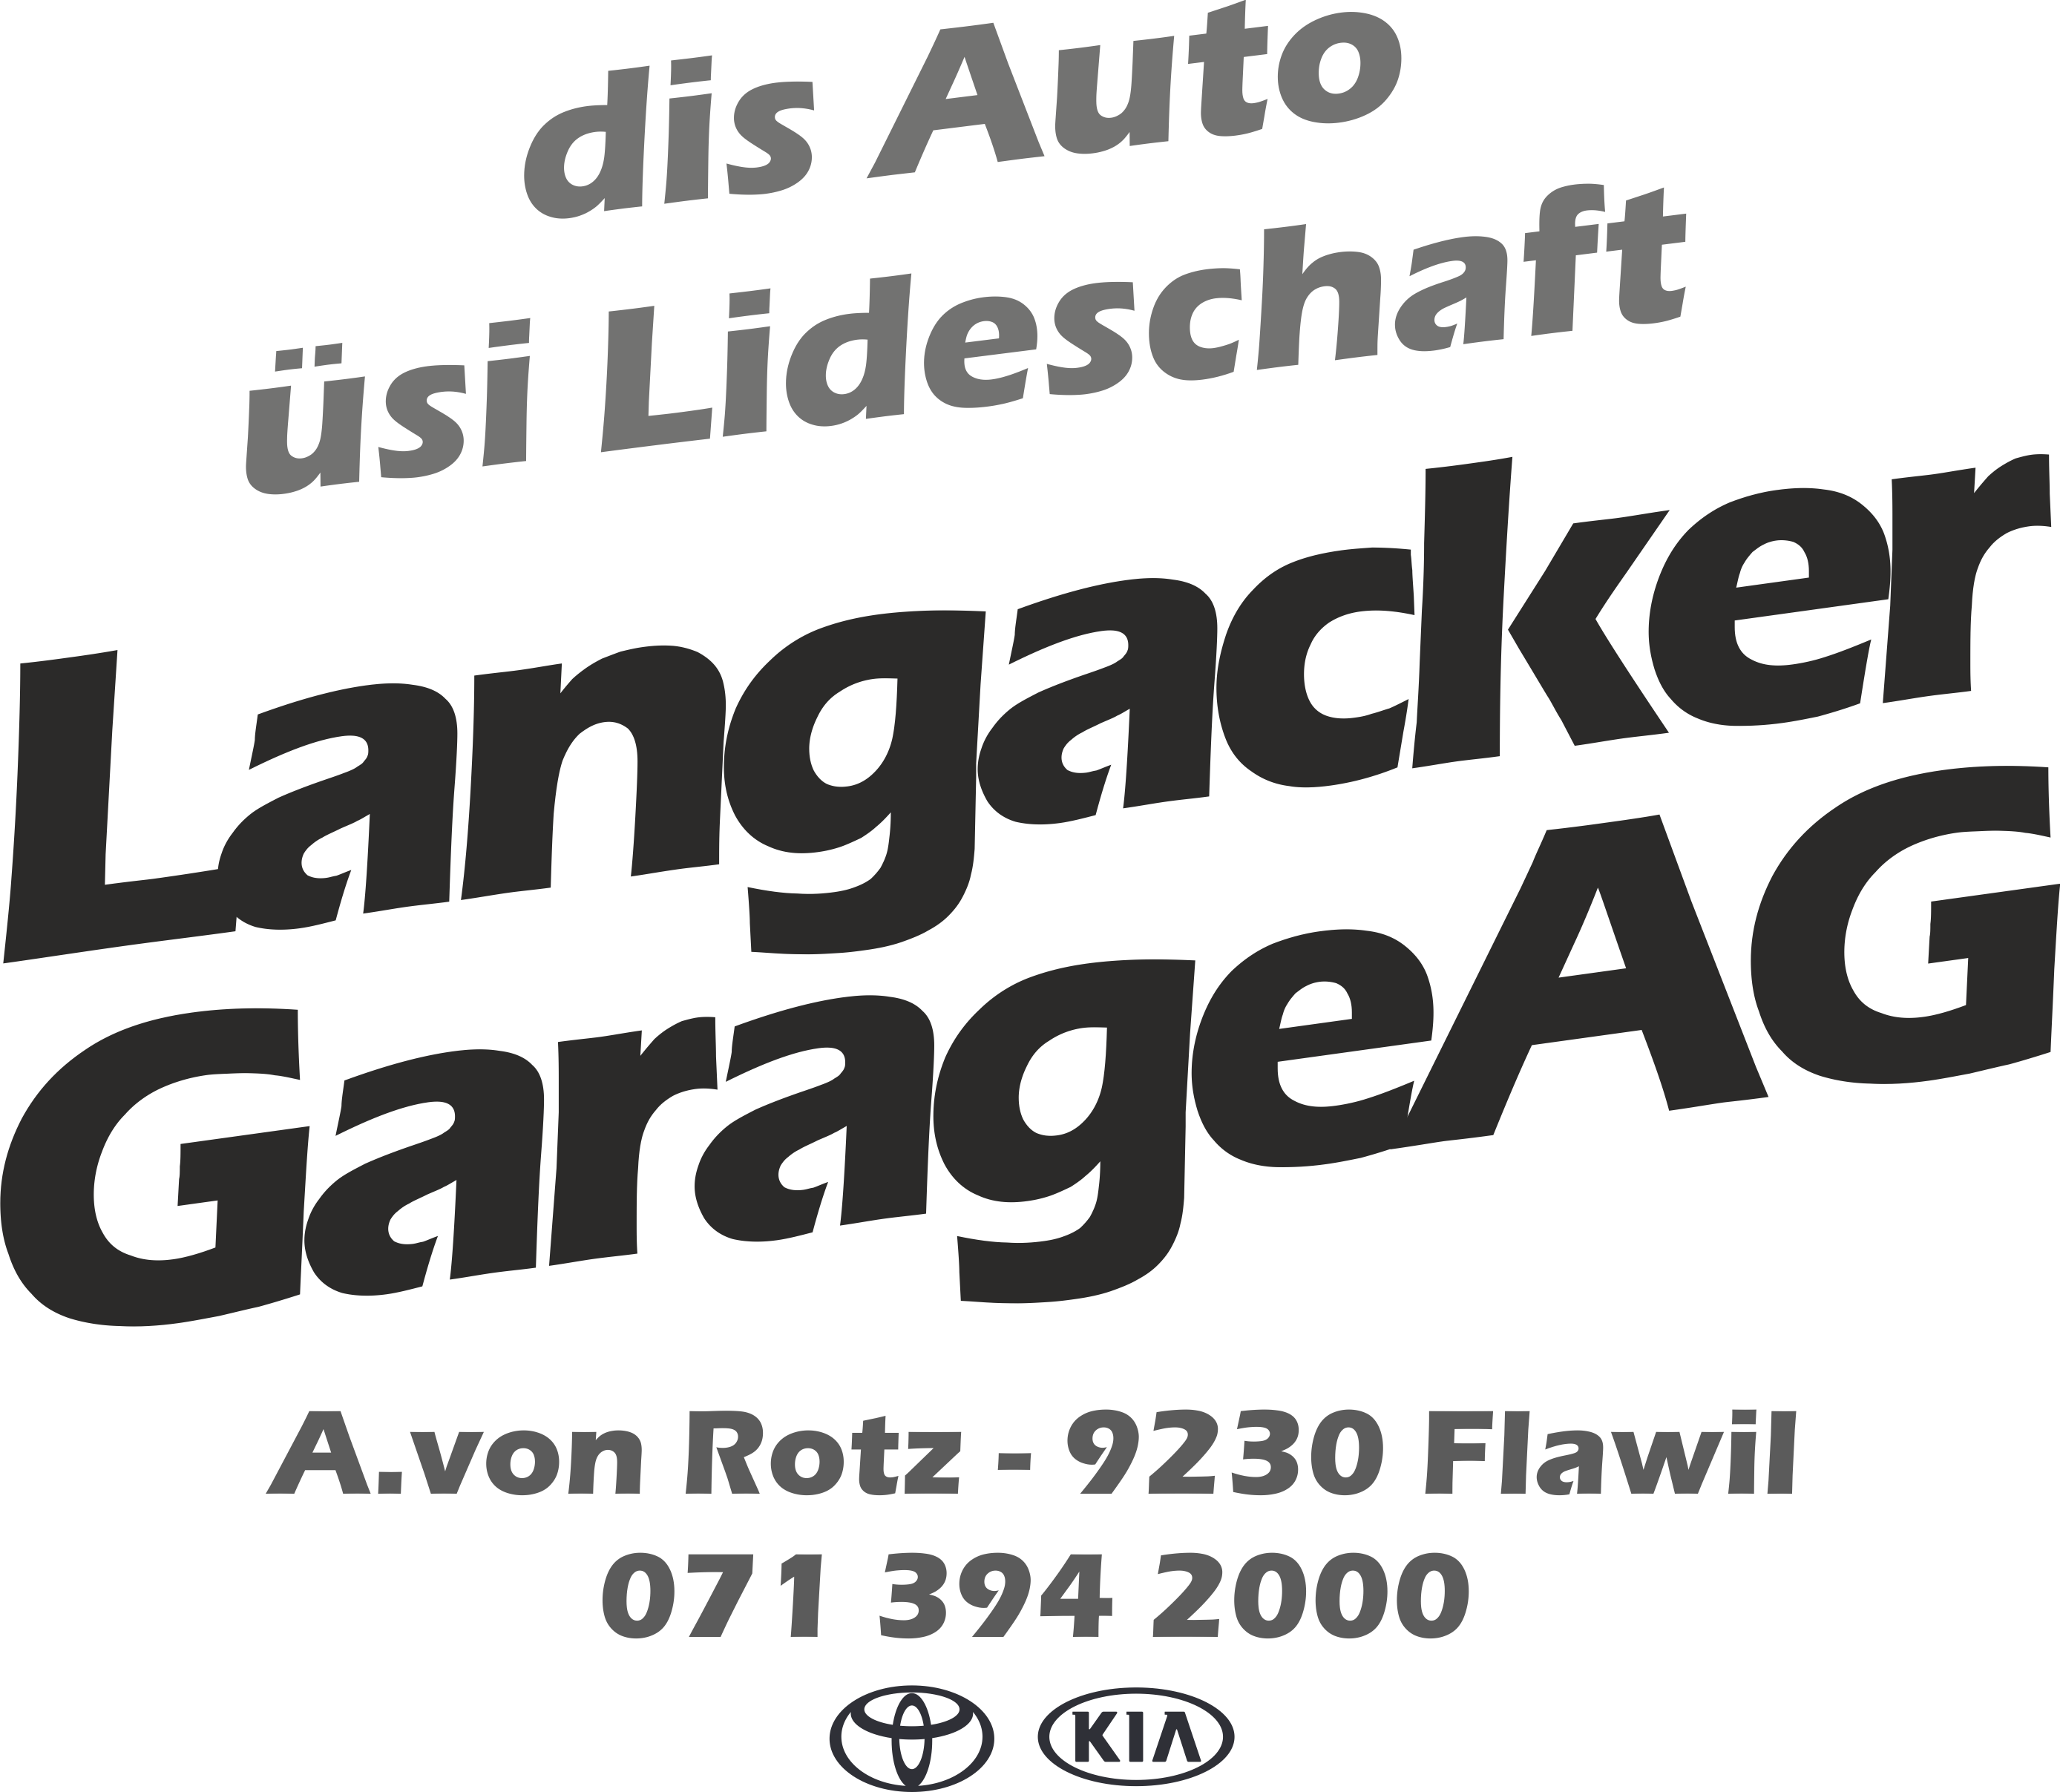 Langacker Garage AG logo